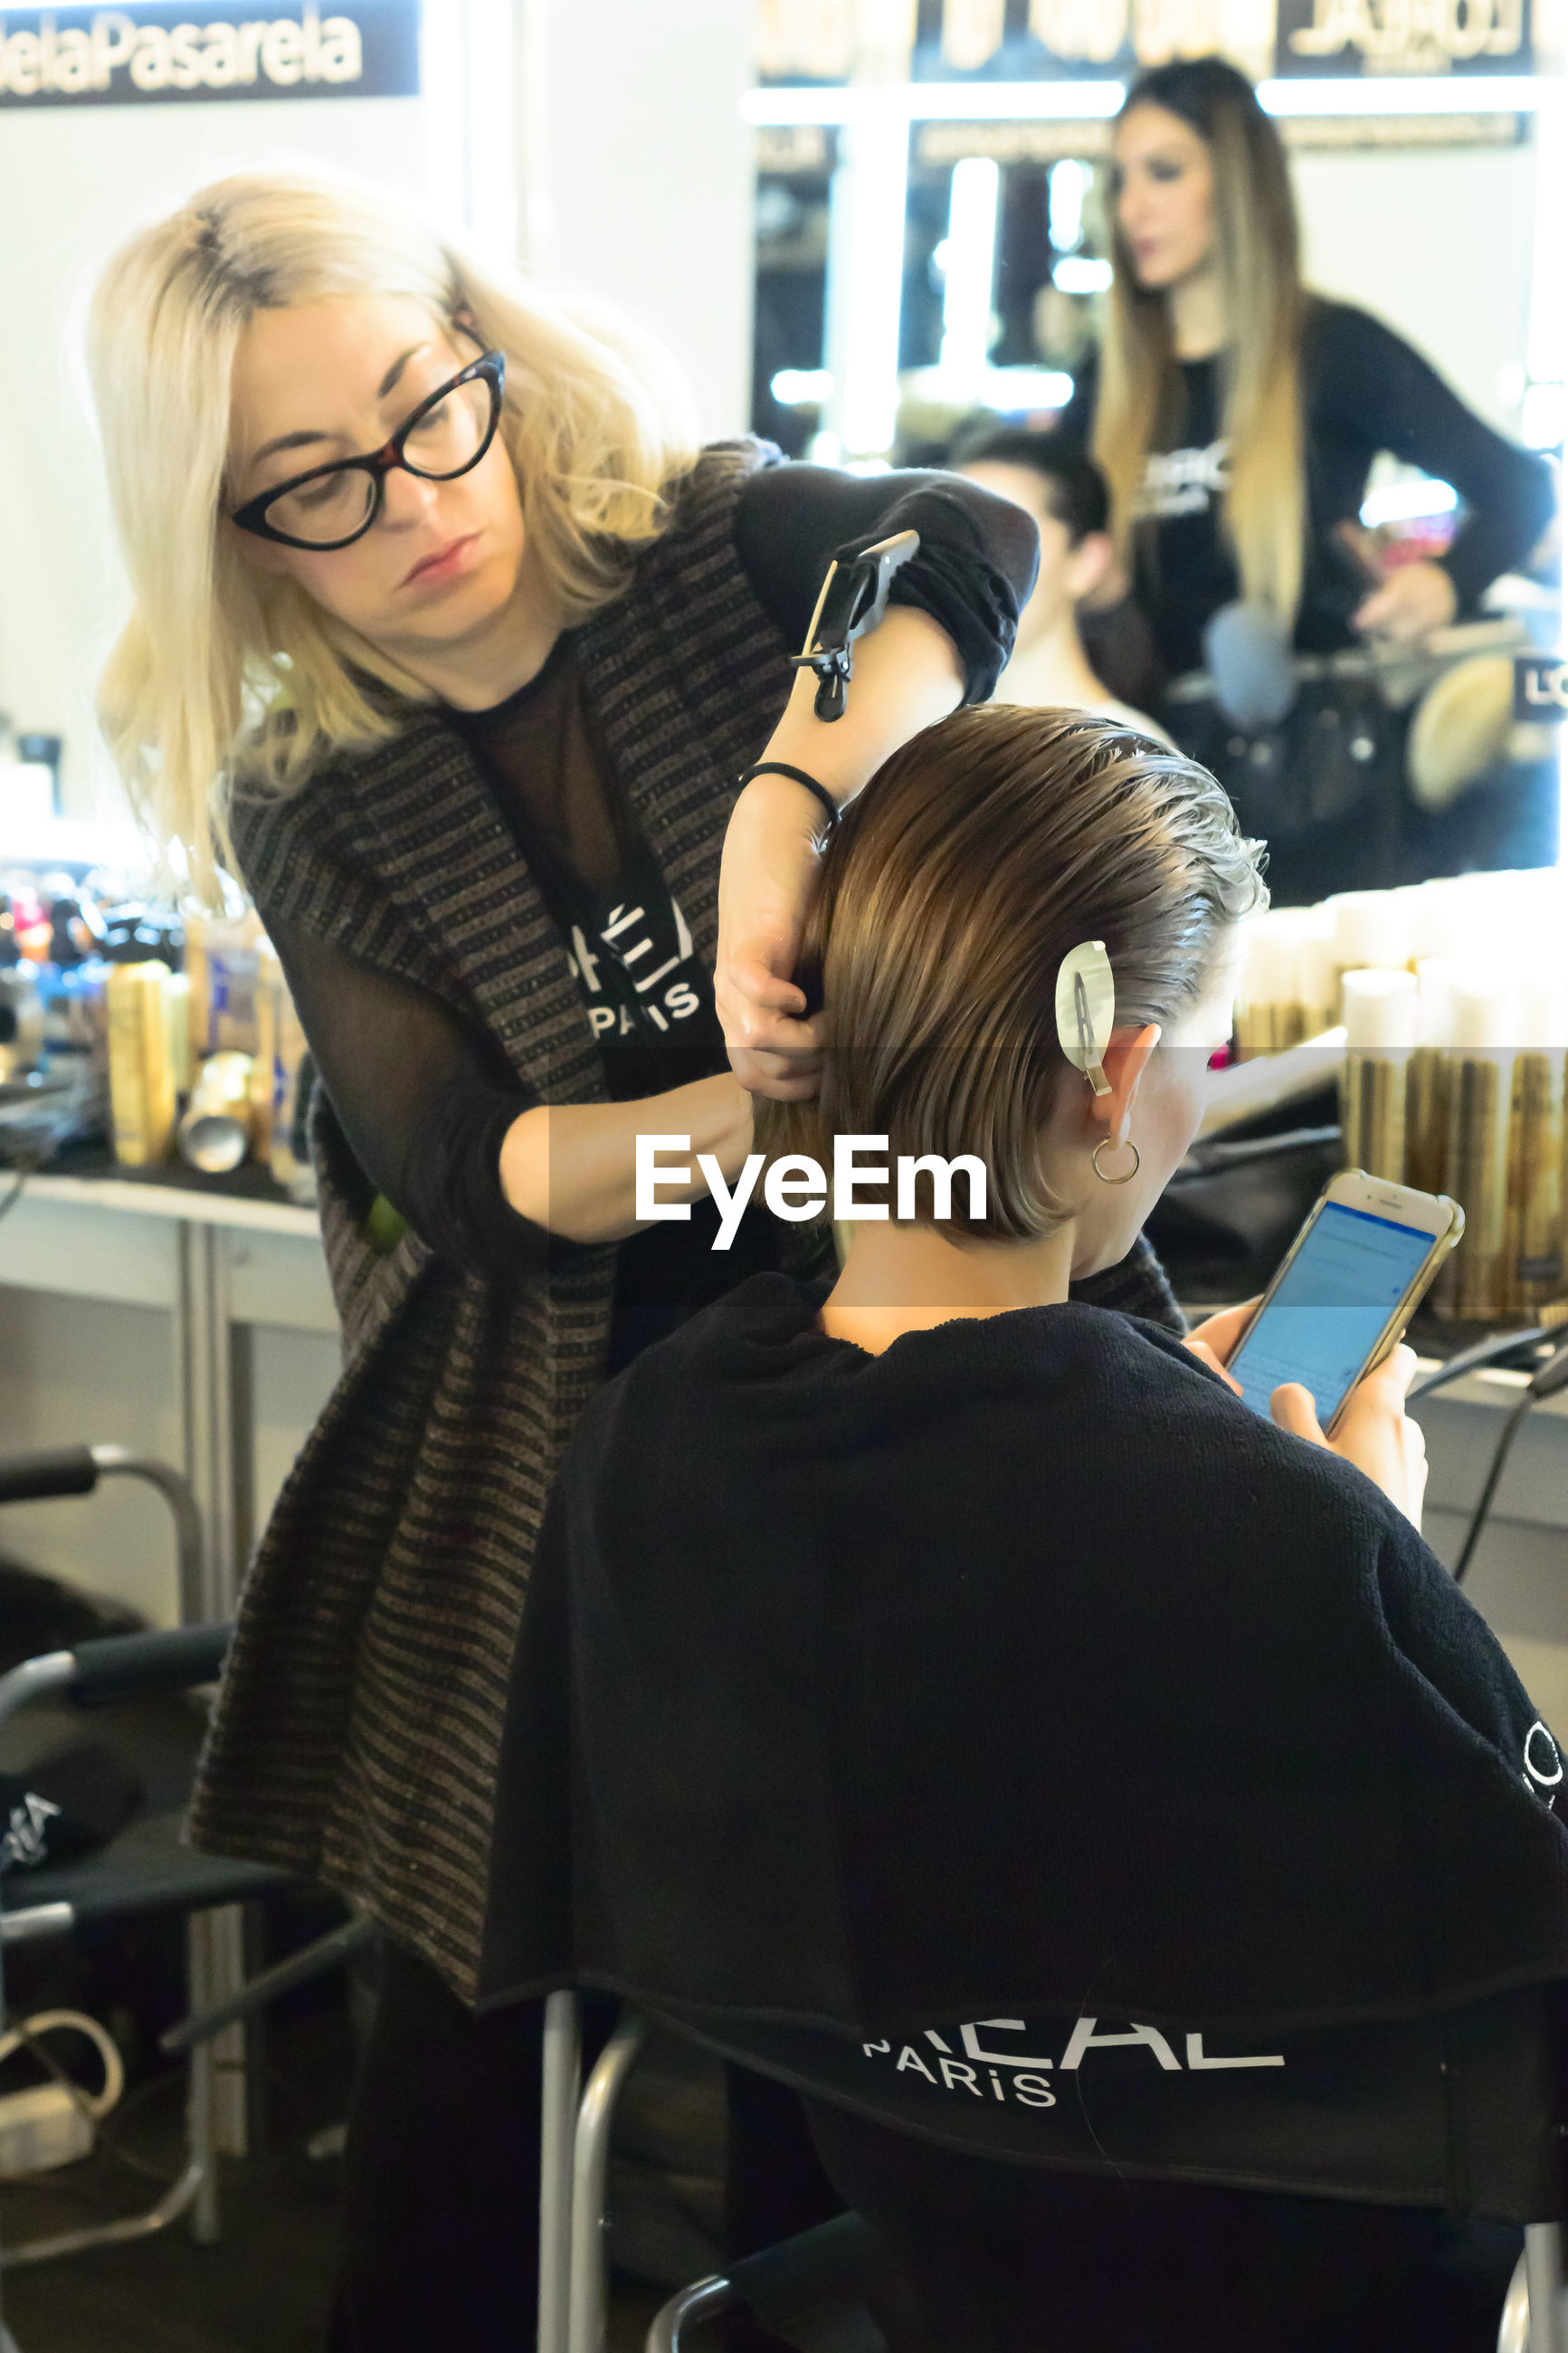 hairdresser, adult, women, indoors, eyeglasses, business, customer, occupation, female, hair salon, working, two people, small business, glasses, young adult, blond hair, business finance and industry, hairstyle, sitting, person, communication, standing, technology, men, clothing, entrepreneur, cutting hair, barber shop, office, lifestyles, expertise, service, casual clothing, computer, fashion